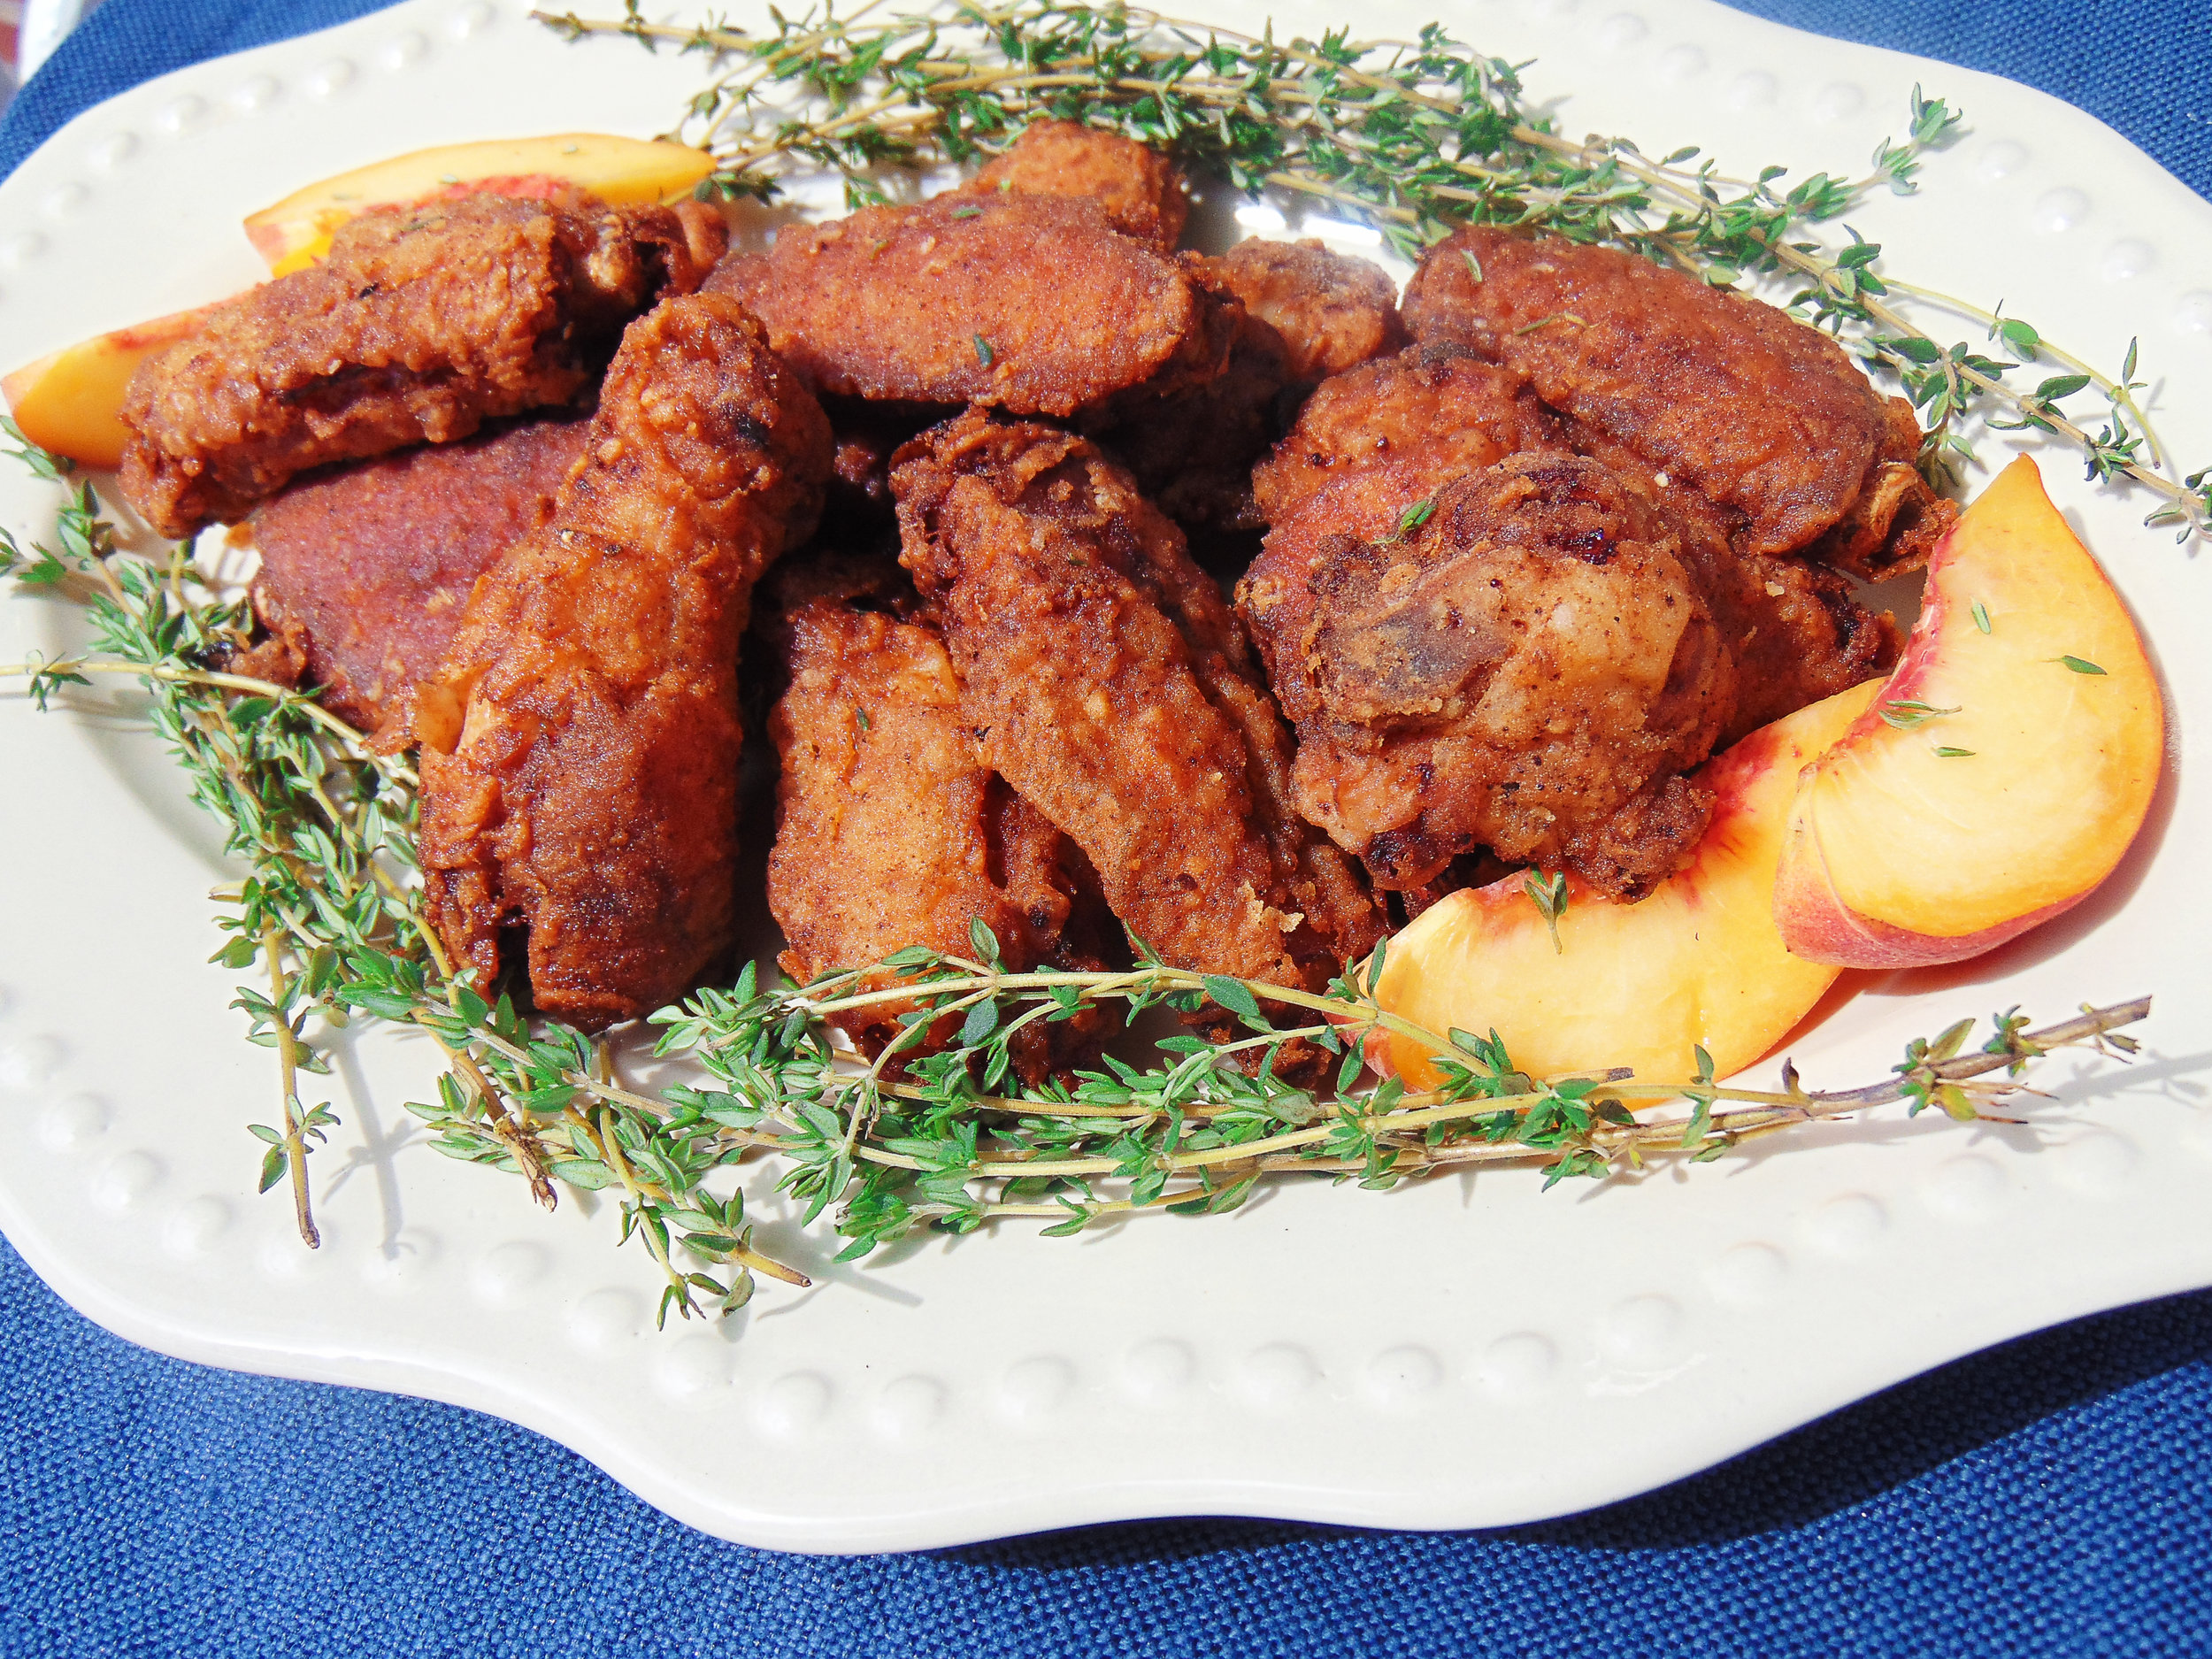 Southern Peach Tea-brined Fried Chicken